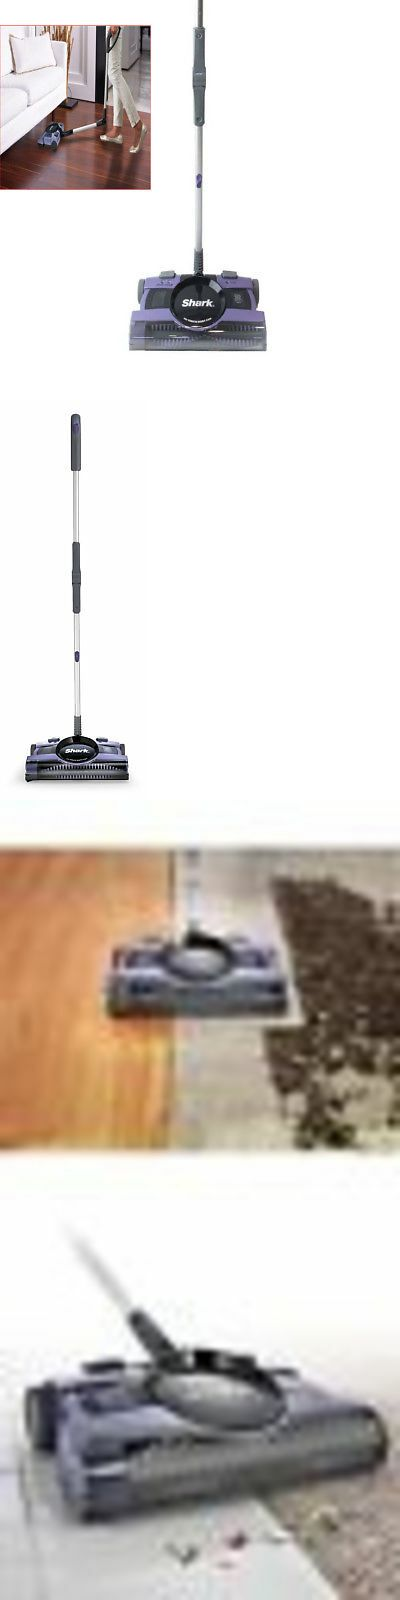 Carpet and Floor Sweepers 79657: Shark Crdls Sweeper Shark V2950 Rechargeable Floor And Carpet Sweeper Purple13 -> BUY IT NOW ONLY: $68.77 on #eBay #carpet ...